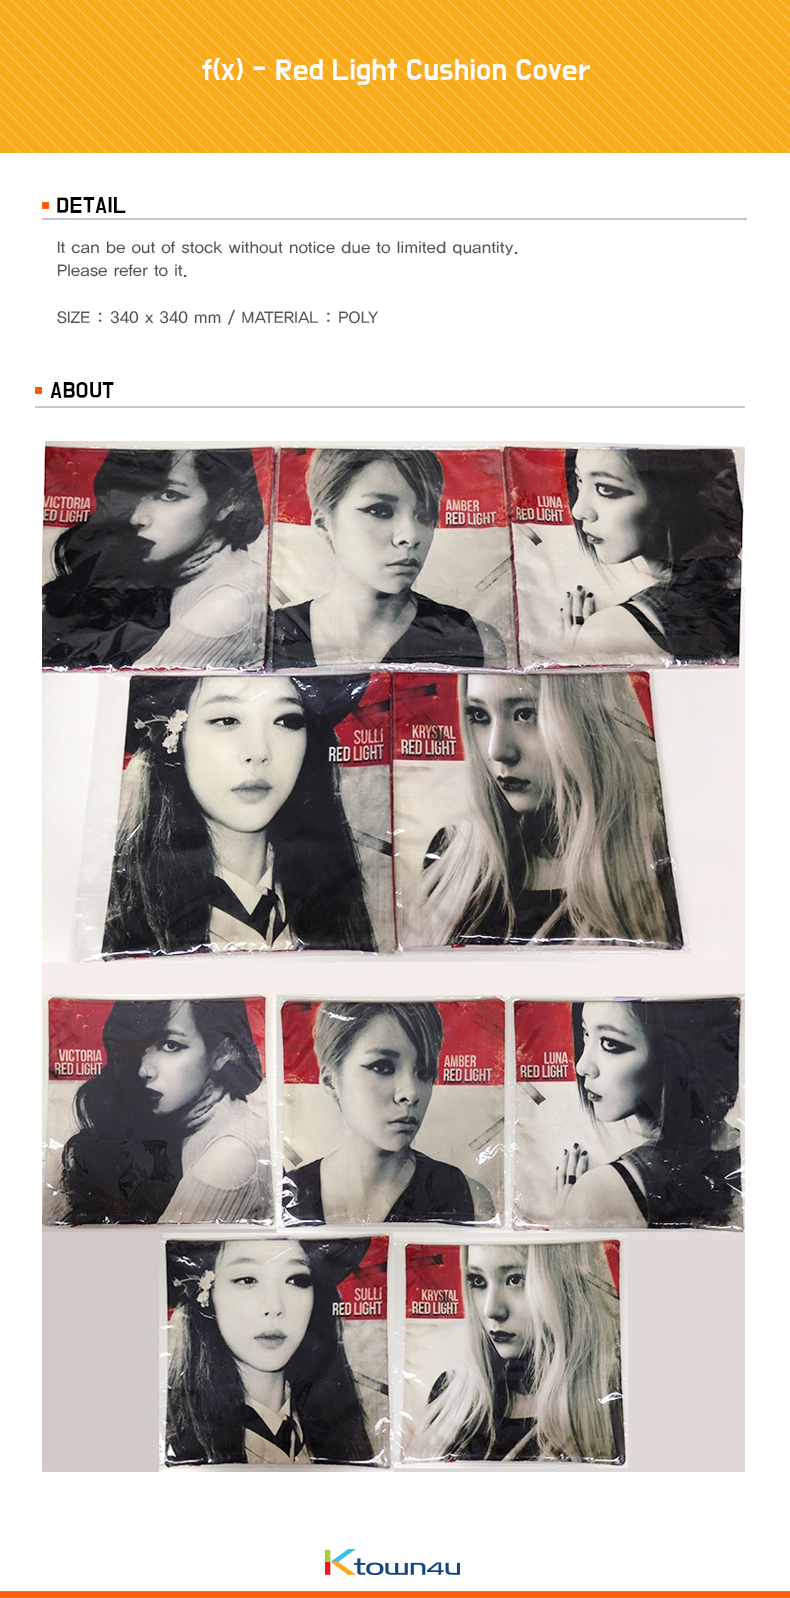 f(x) - Red Light Cushion Cover